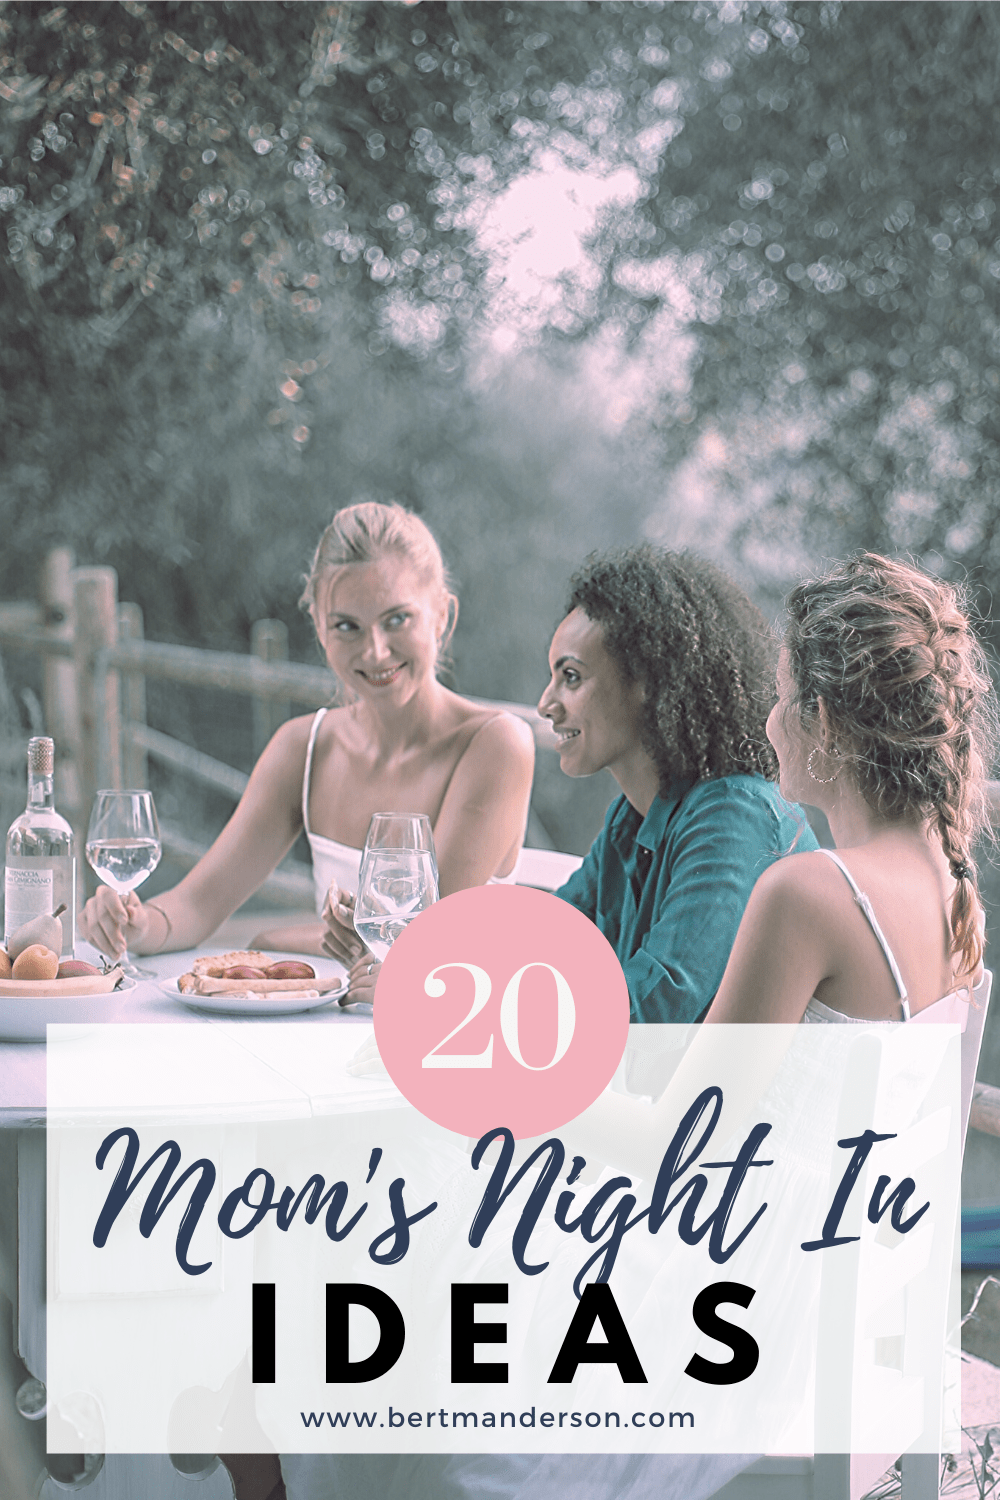 20 moms night in ideas that will bring your girl squad closer together. #partyideas #momsnight #dinnerparty